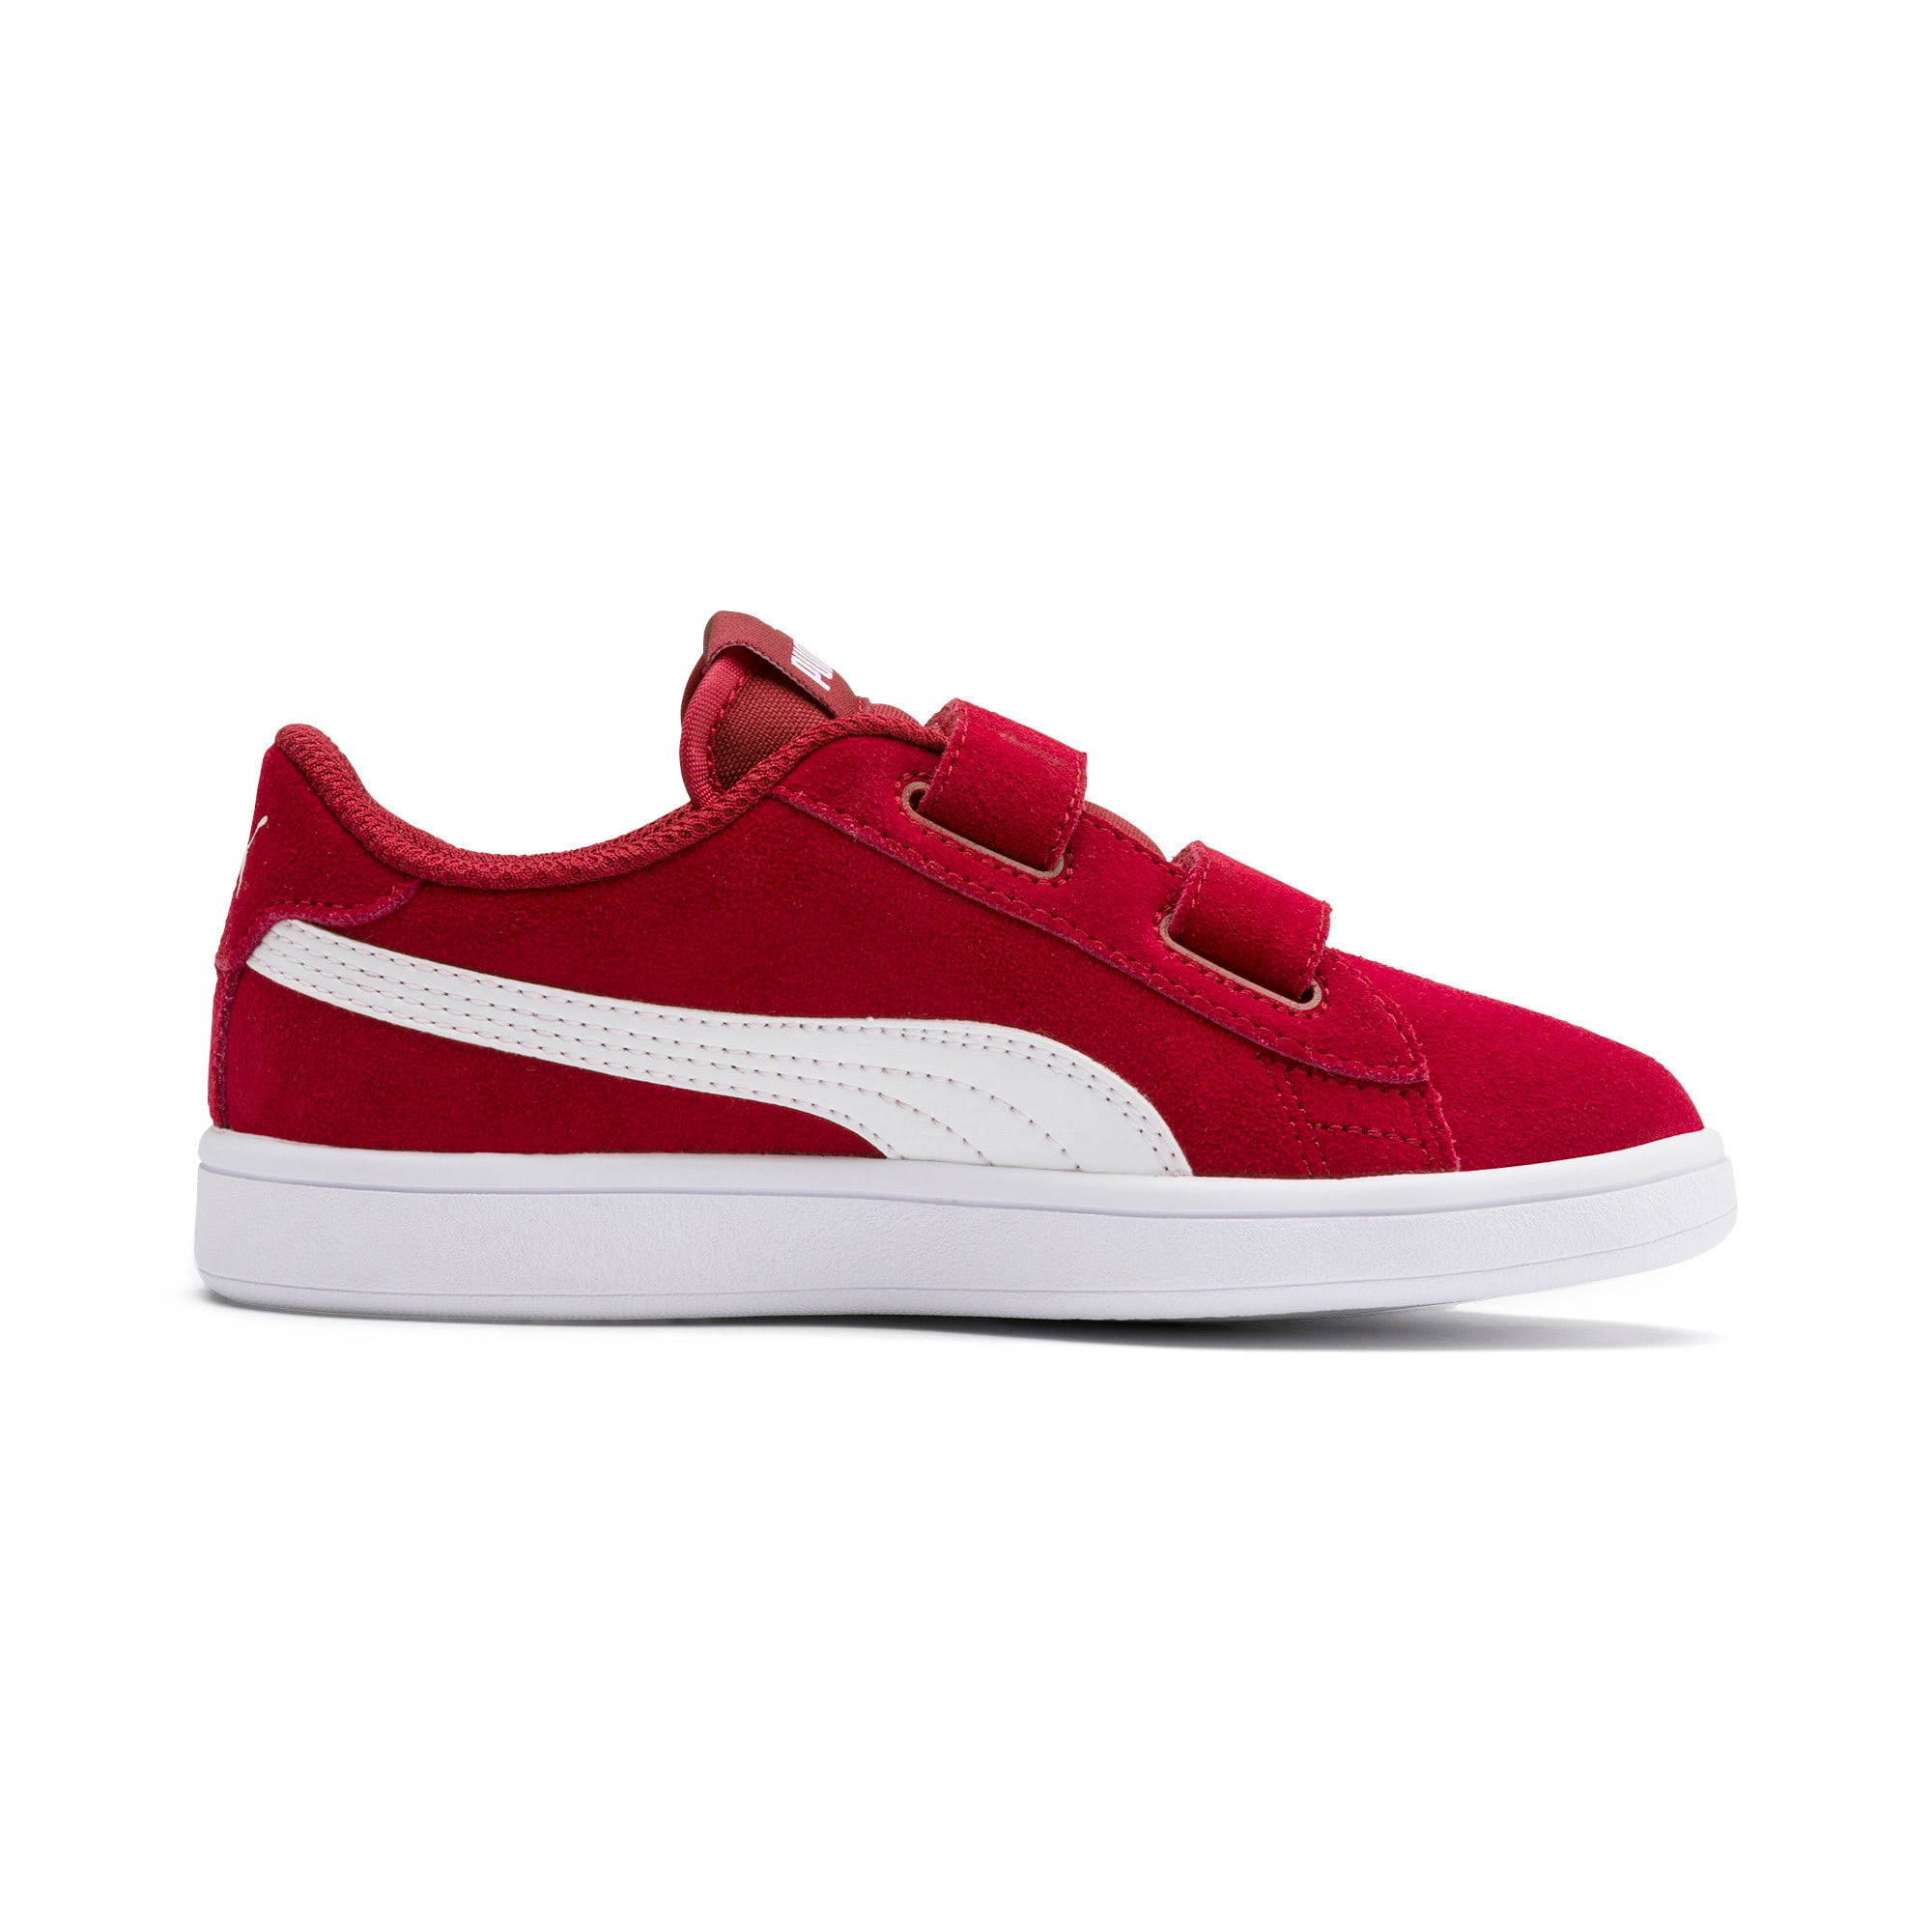 Thumbnail 5 of Smash v2 Suede Little Kids' Shoes, Rhubarb-Puma White, medium